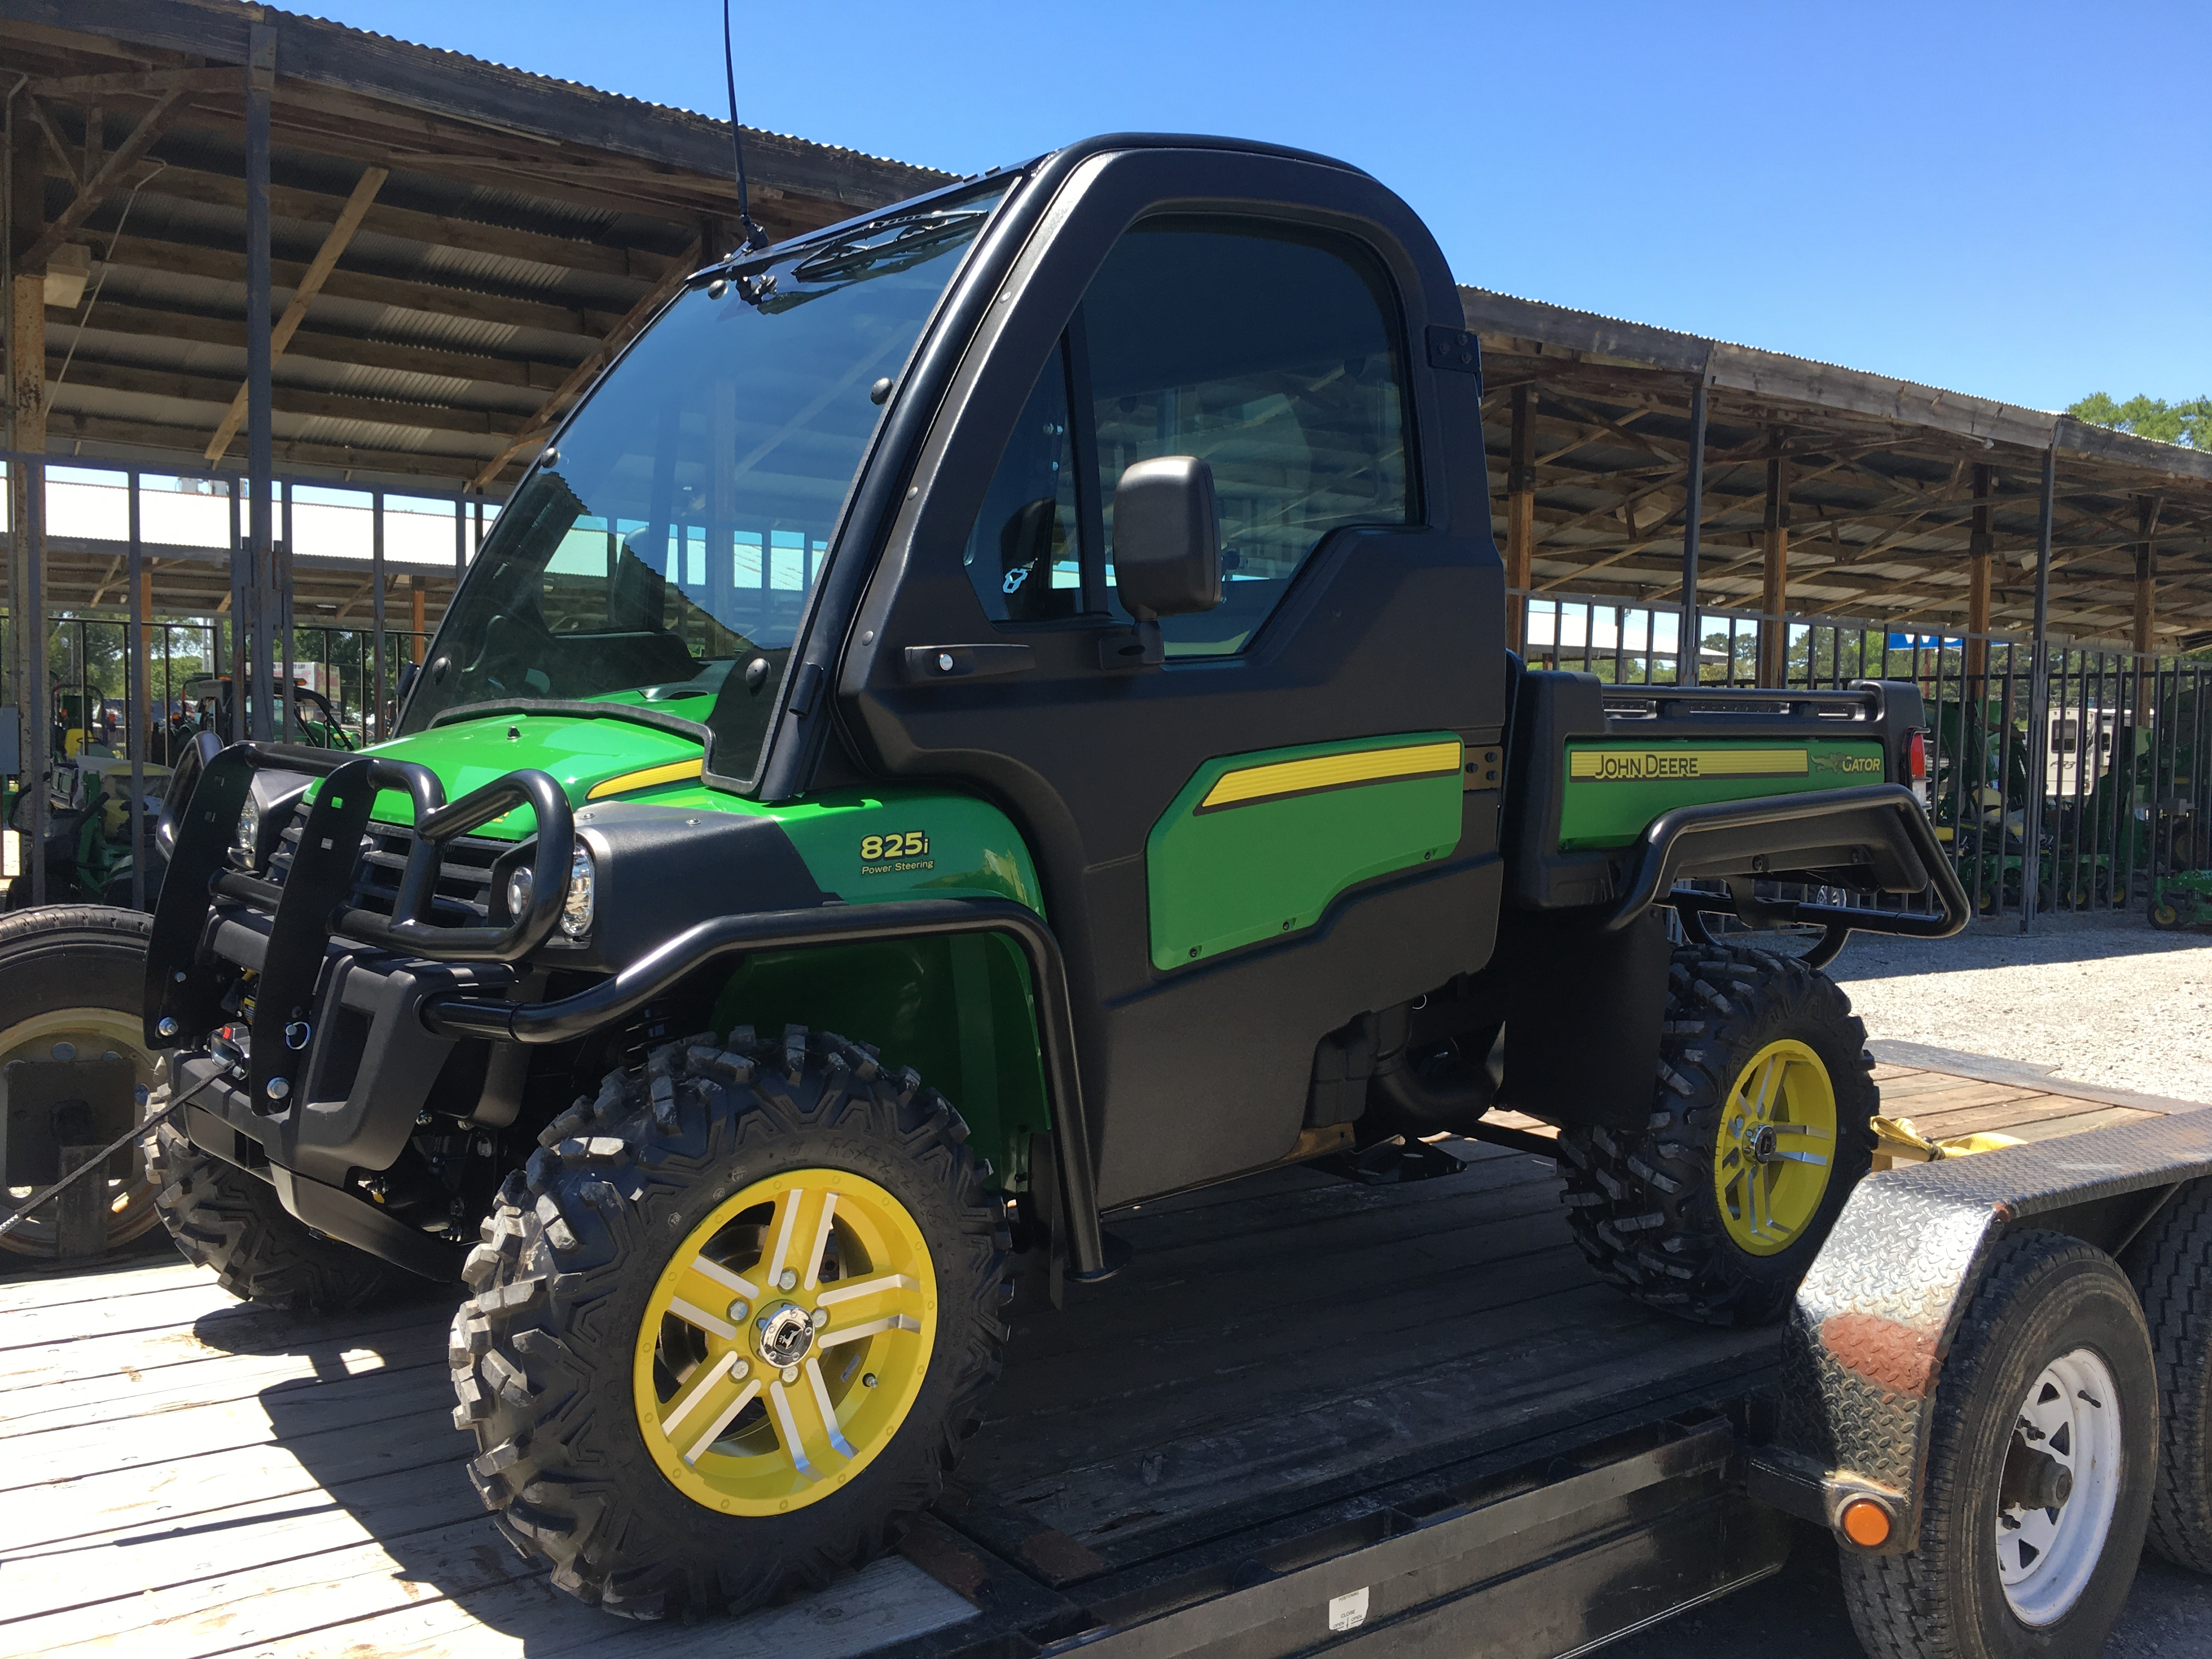 Hqdefault additionally D Hpx I Snow Plow Conversion Img together with  also Df Dbc D A Ff E C D Dc C   Srz moreover D My Gator I Image. on john deere gator 825i